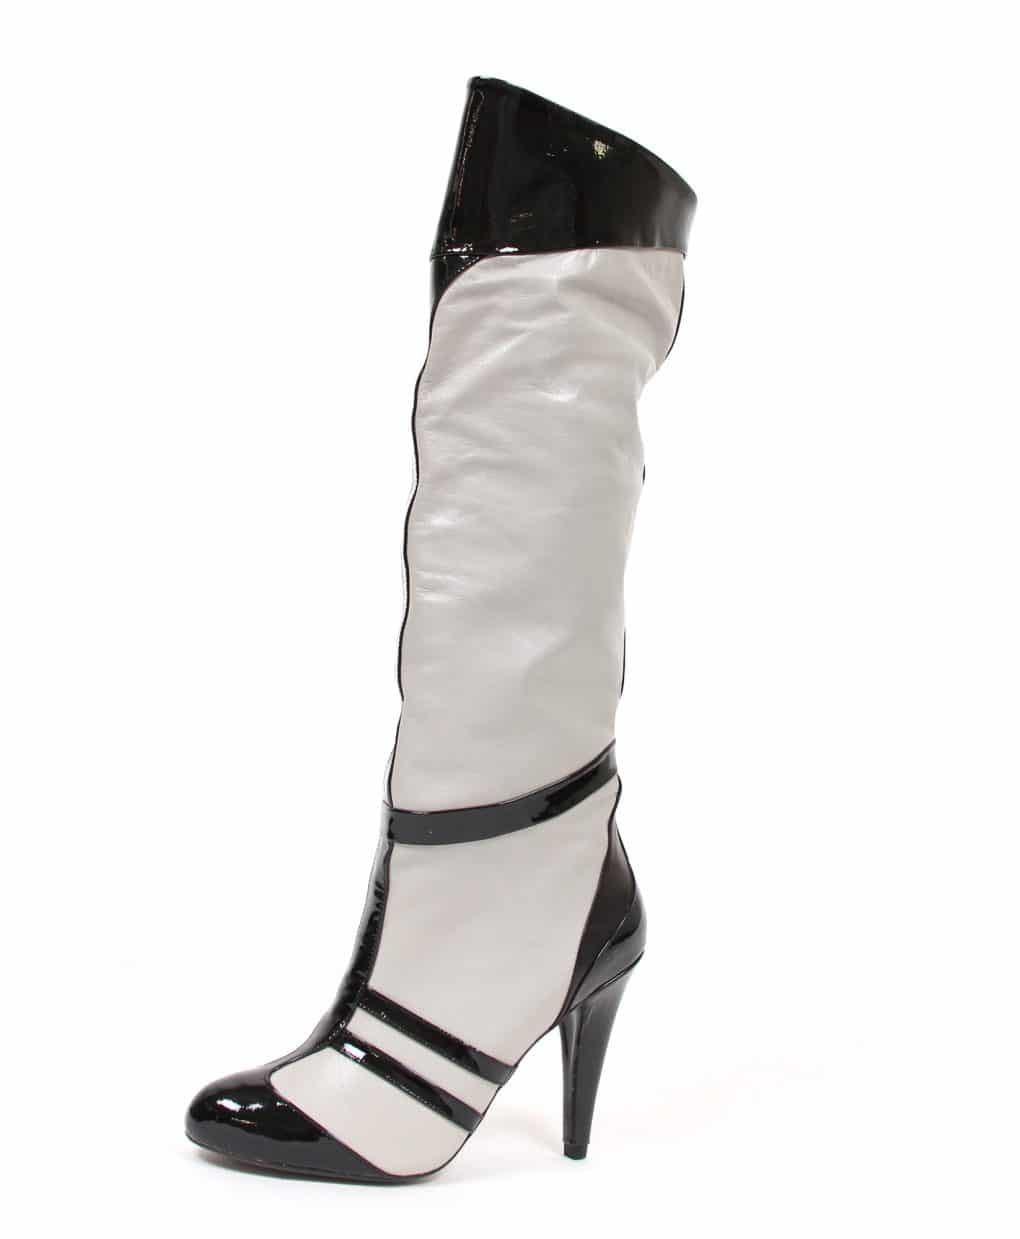 Grey-and-Black-patent-stripe-knee-high-boot-Elena-Perseil-Alila